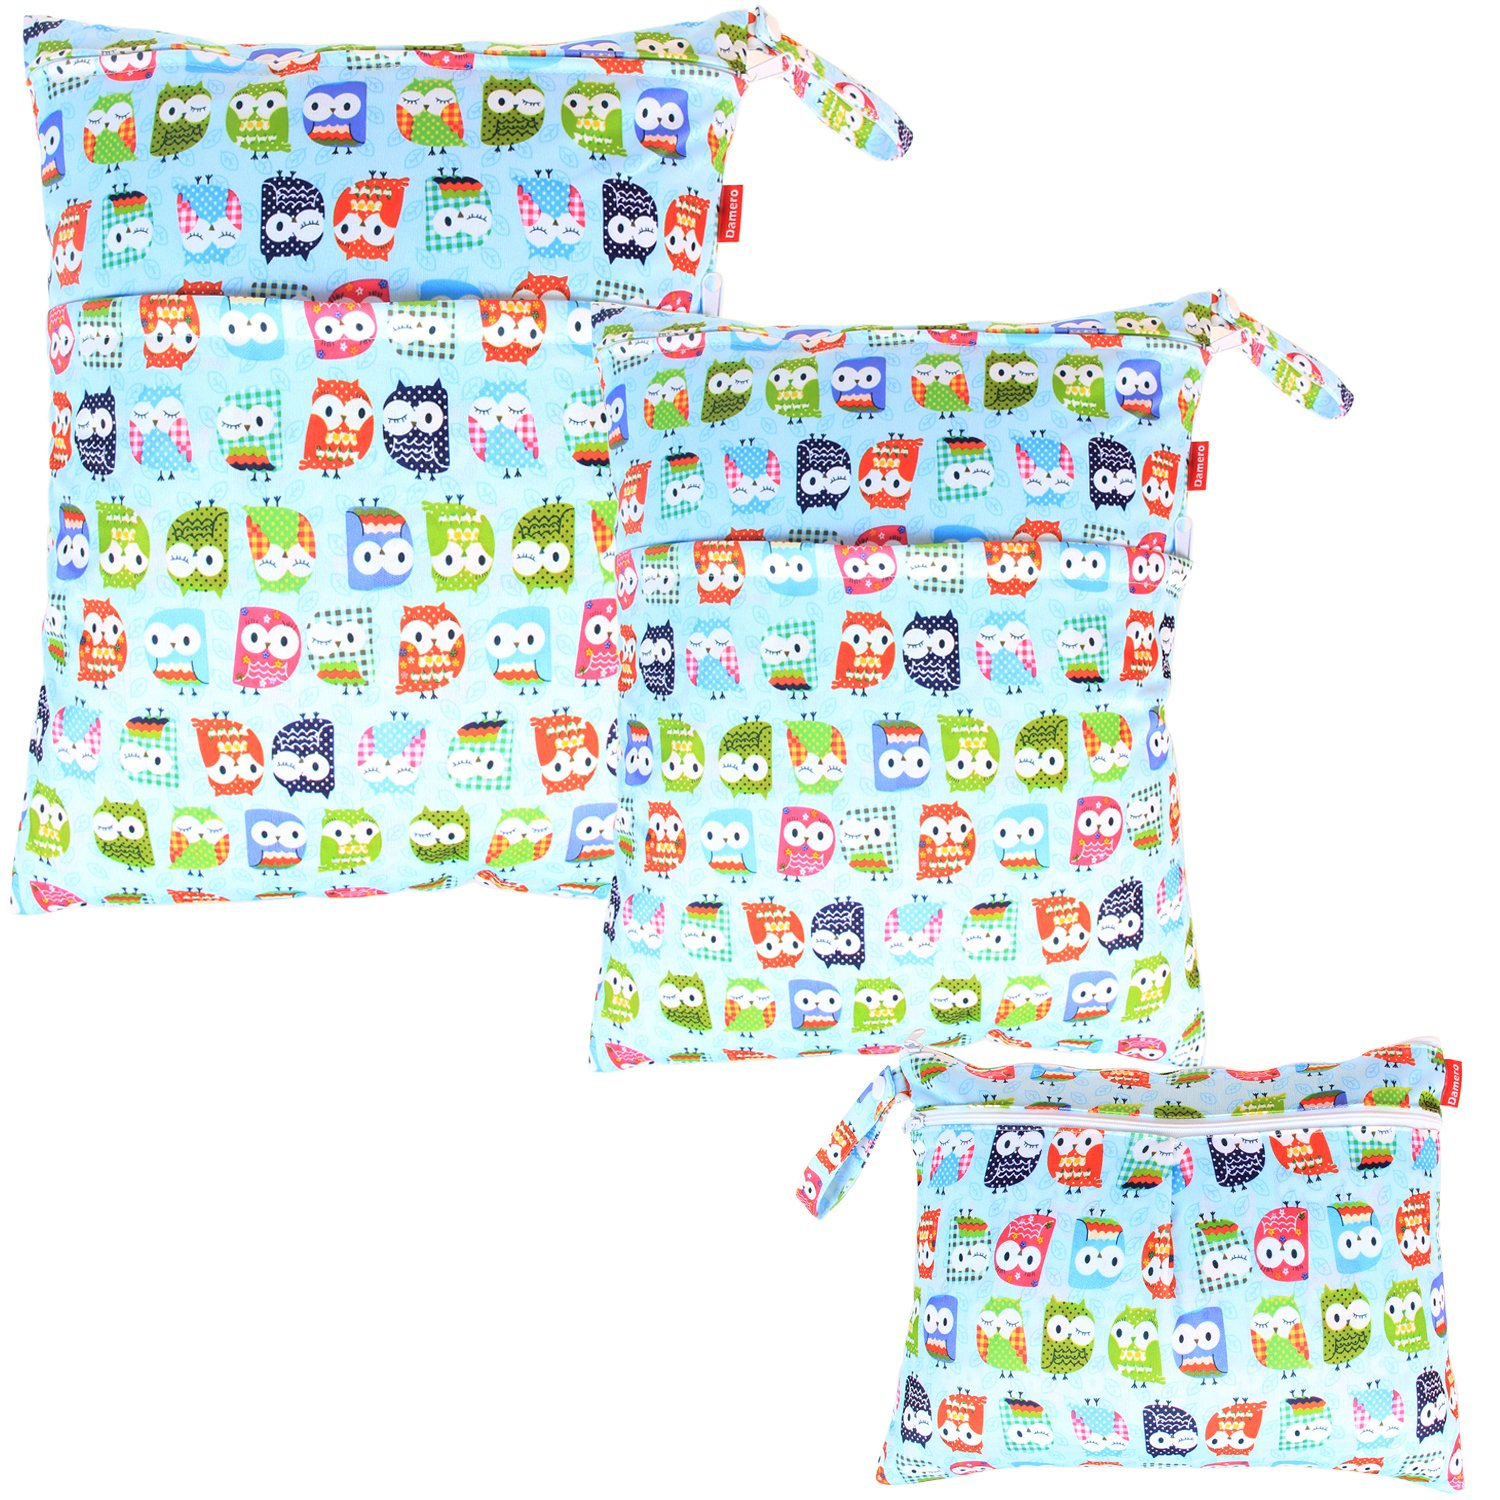 Grey Chevron Damero 3pcs Pack Wet Dry Bag for Cloth Diapers Nappy Bag Daycare Organiser Bag